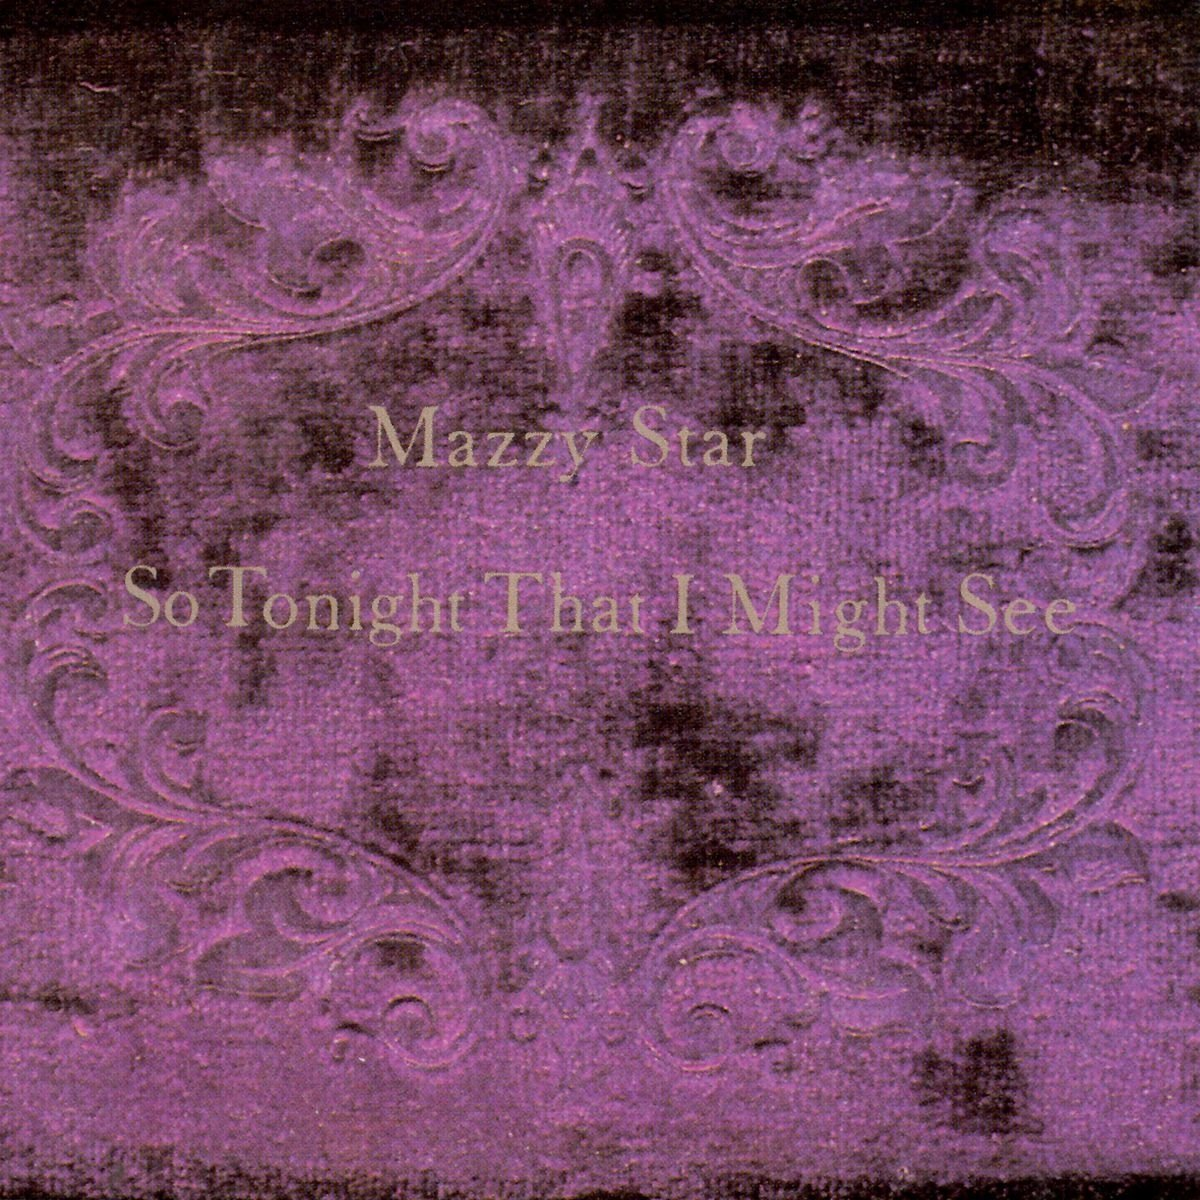 Mazzy Star - So Tonight That I Might See (Ltd) (Purp)